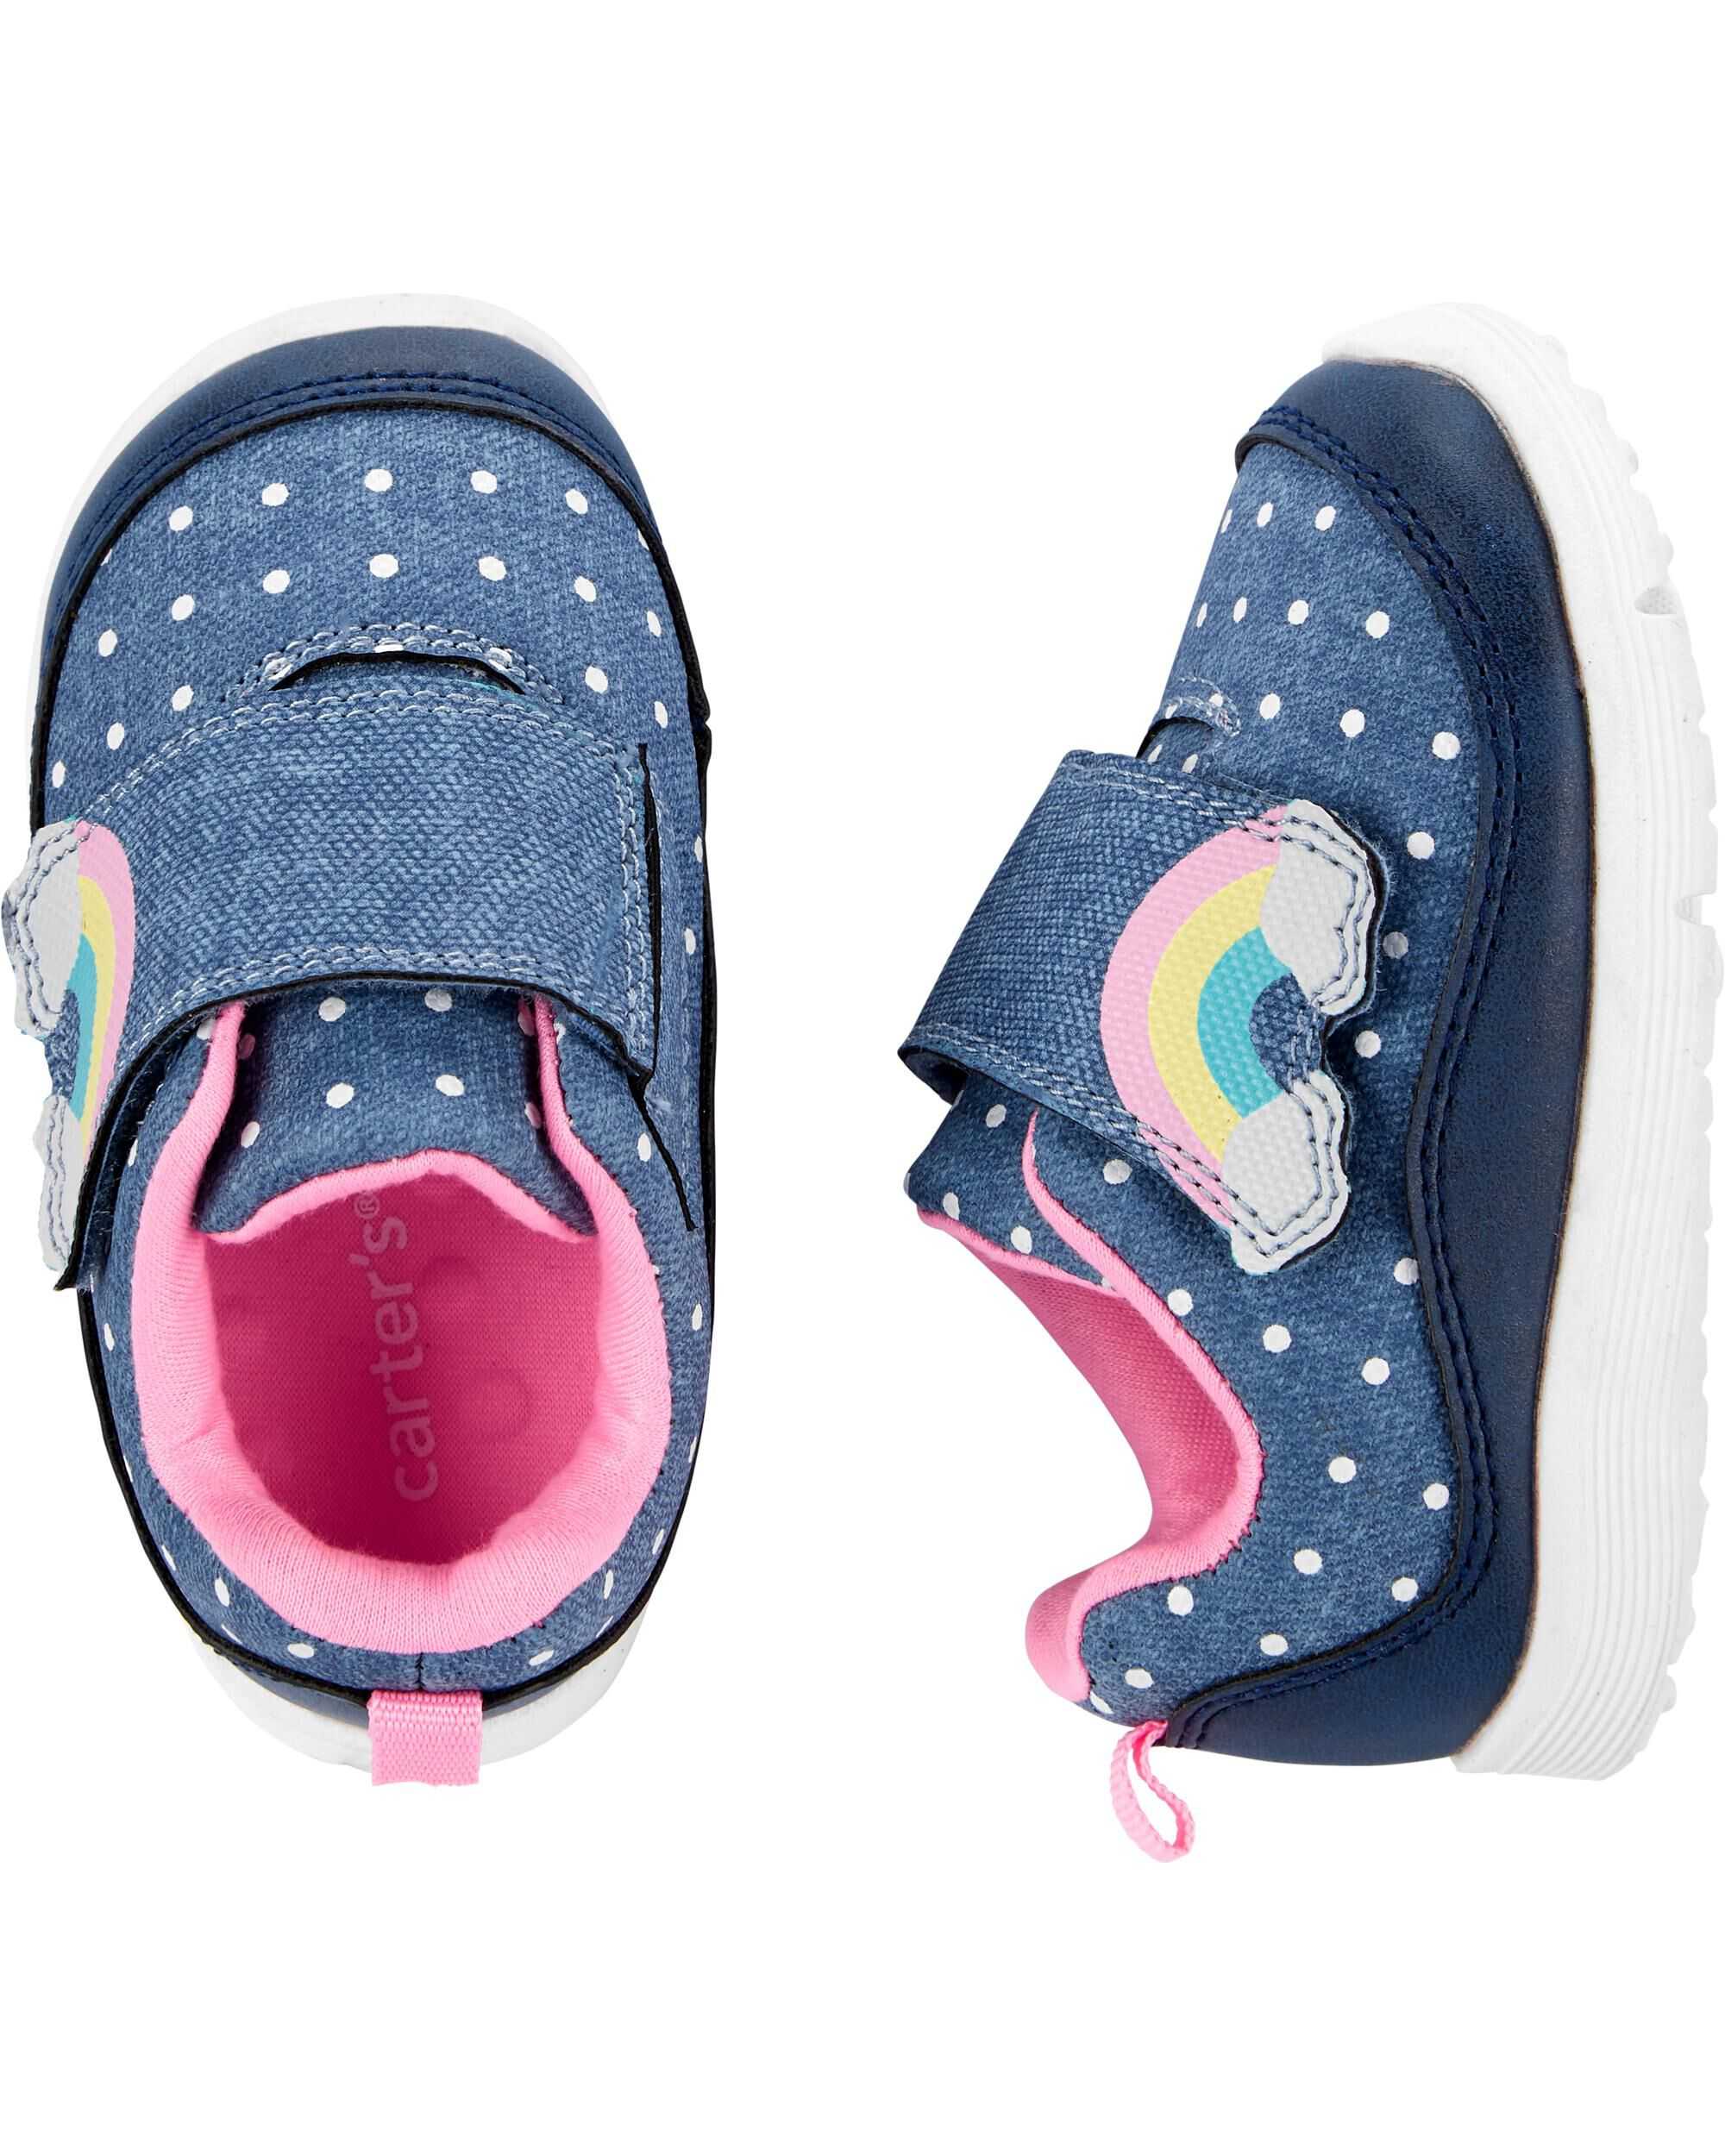 Carter's Rainbow Sneaker Baby Shoes